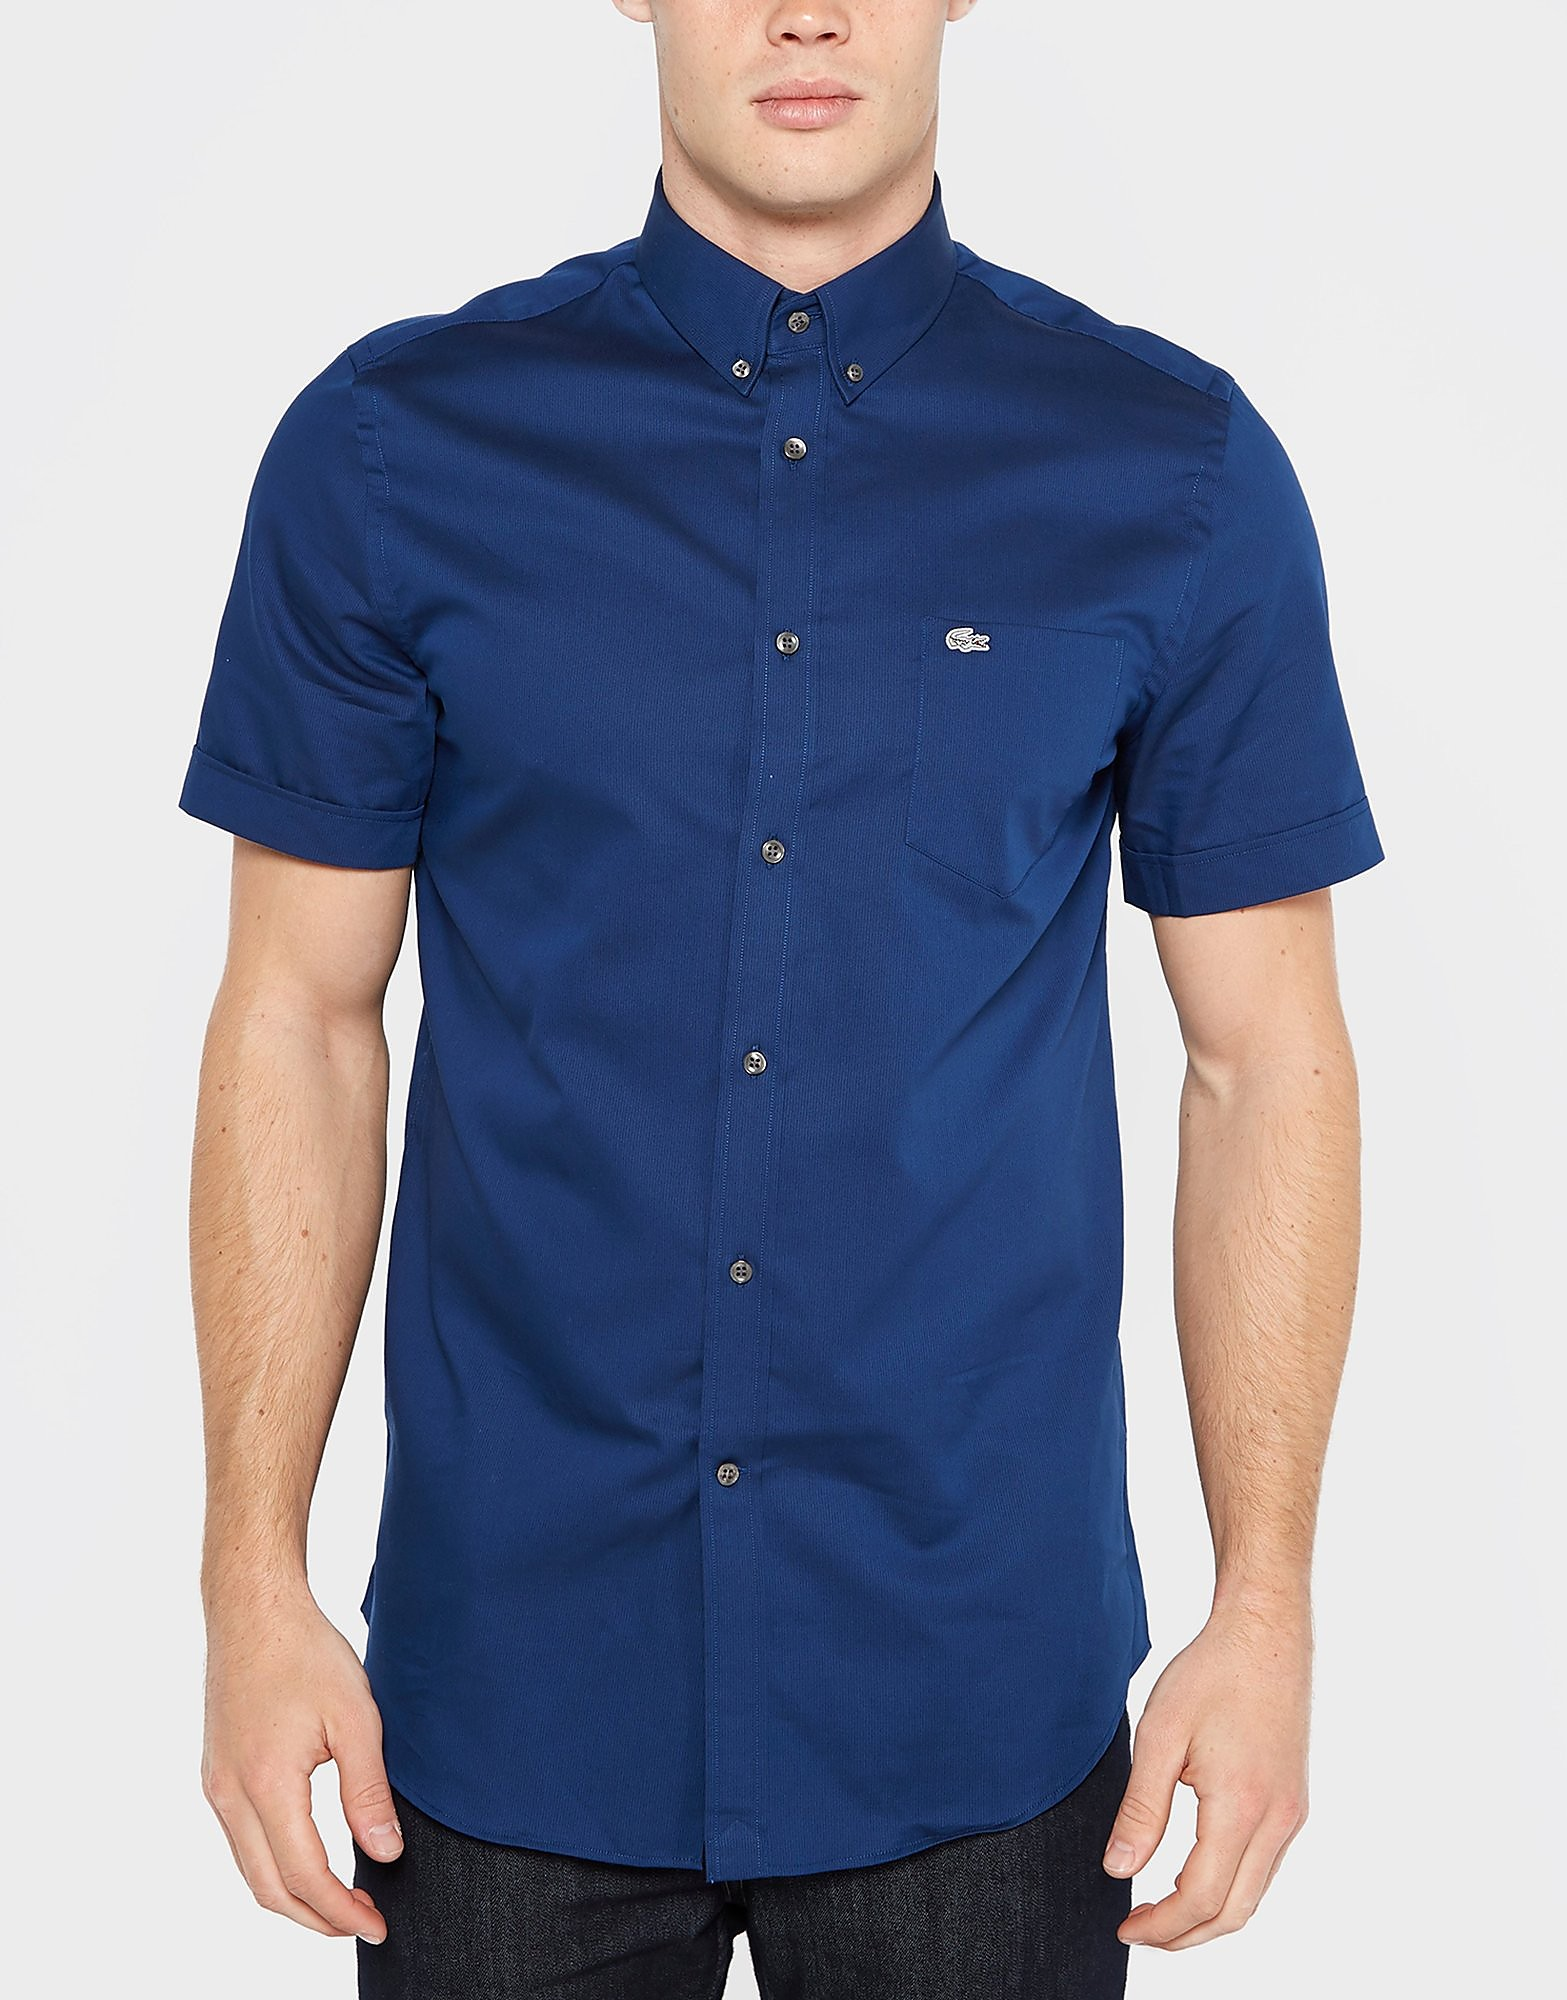 Lacoste Button Down City Shirt